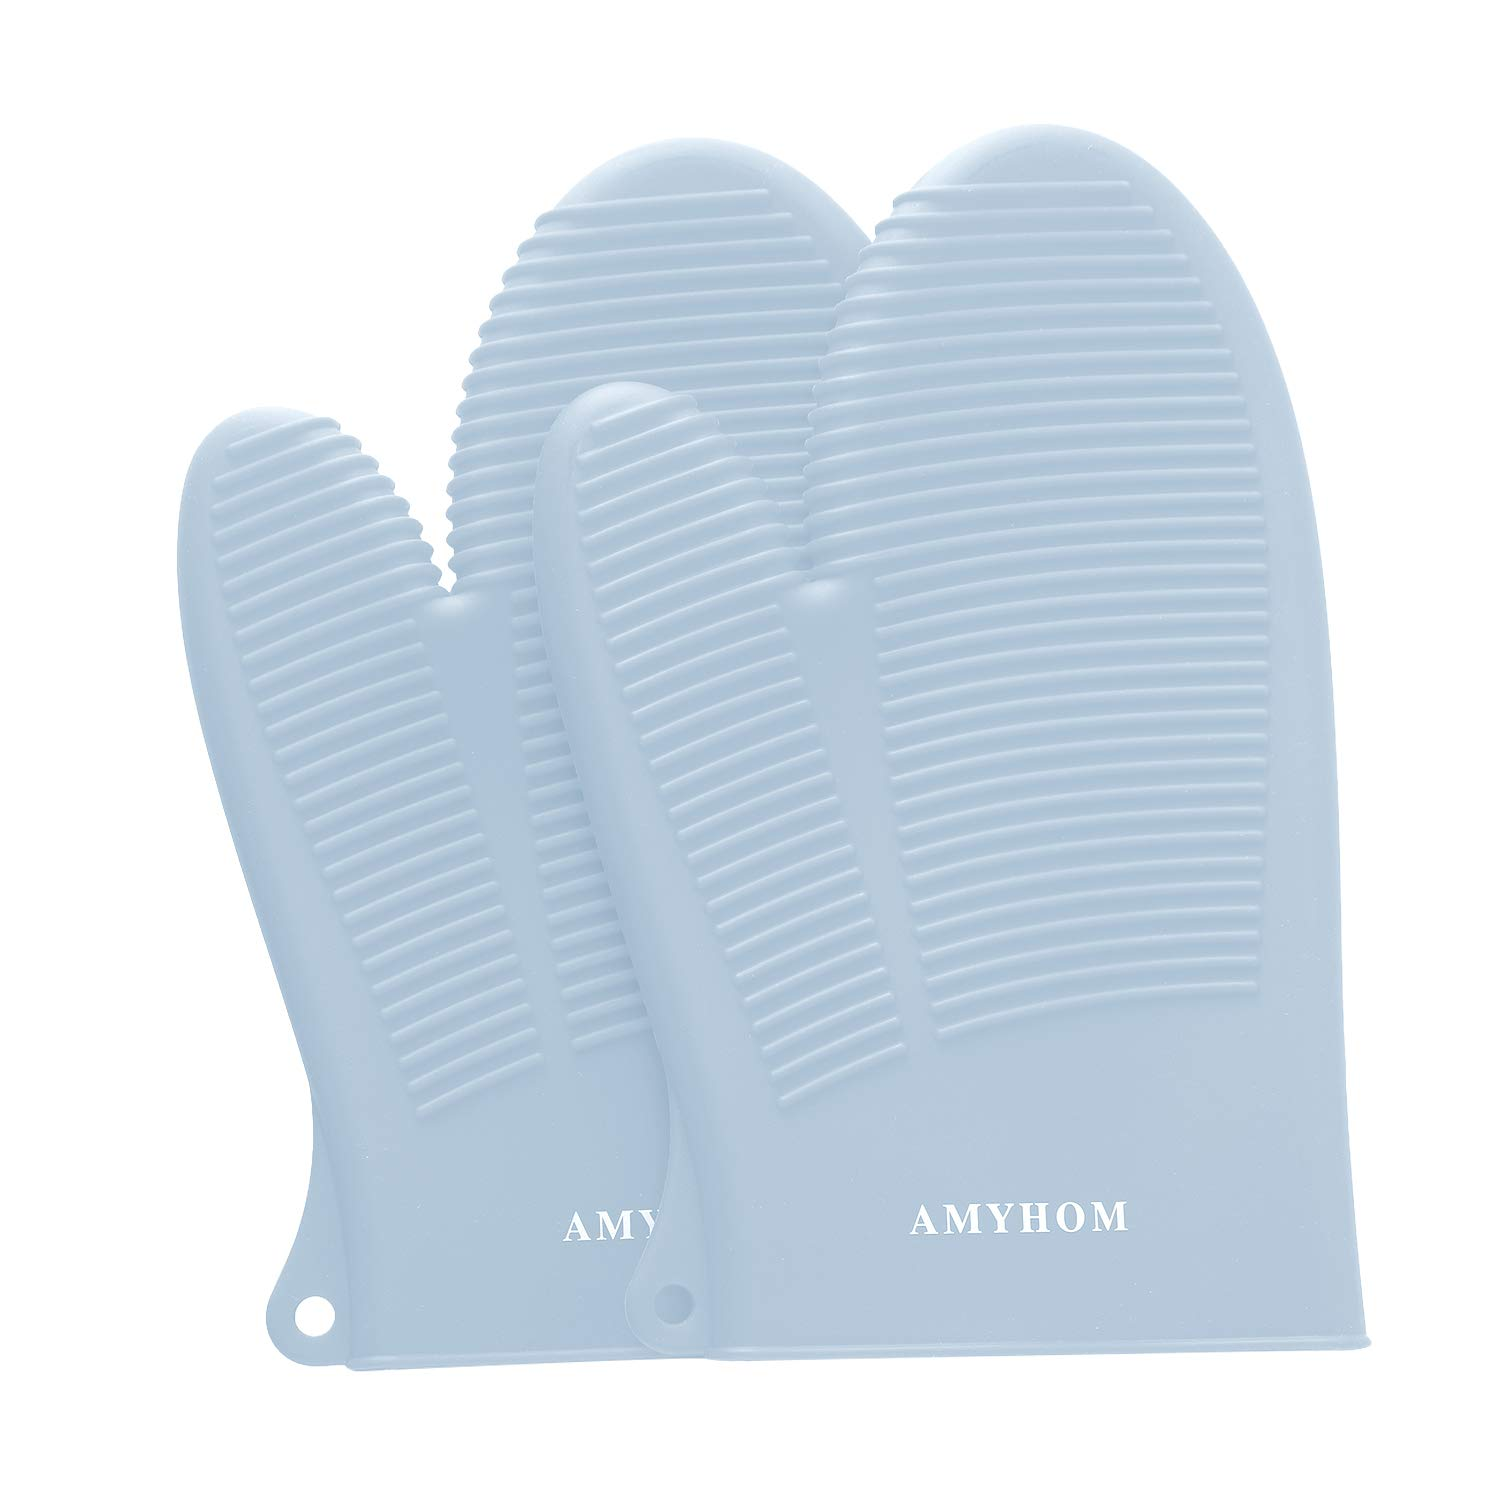 AMYHOM Silicone Oven Mitts, Superior Heat Resistance 446°F Food Grade Professional Safe Pot Holders Kitchen Gloves for Cooking Oven BBQ Barbecue Baking 1 Pair, Light Blue